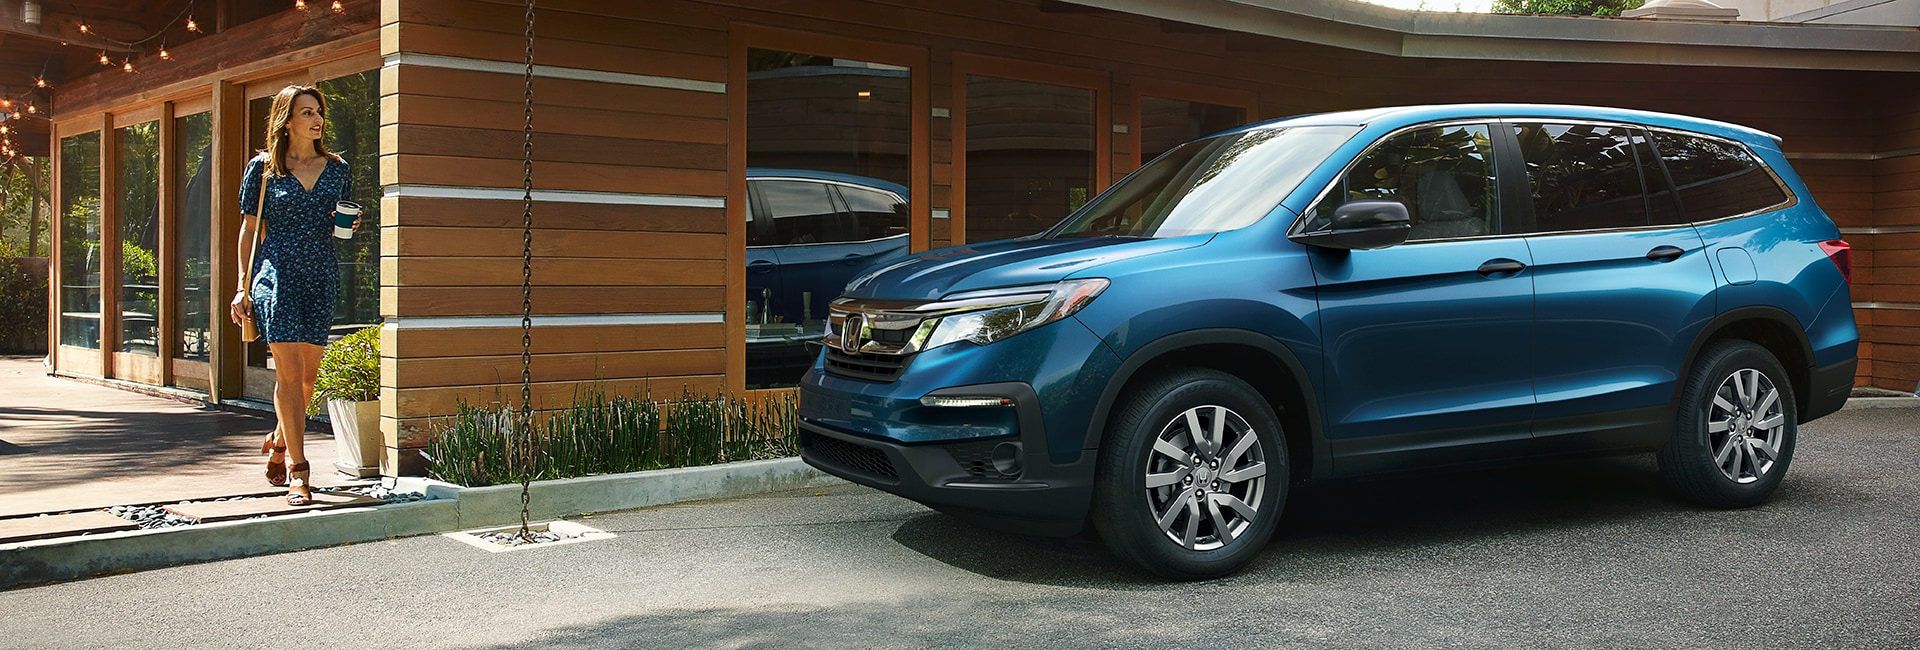 2019 Honda Pilot Exterior Features